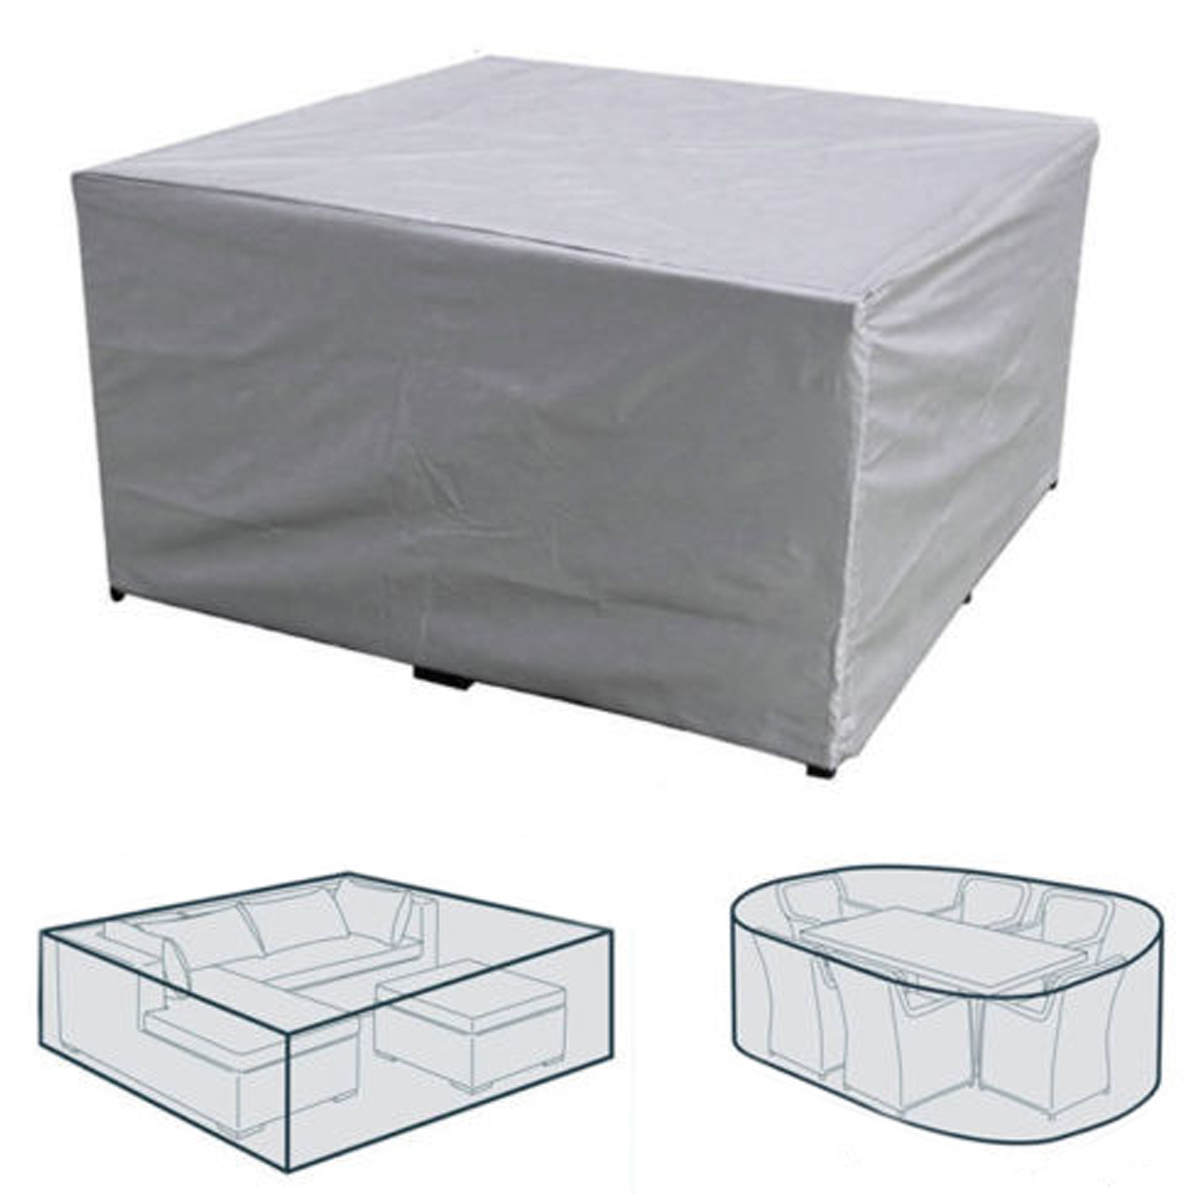 7 Sizes Waterproof Outdoor Patio Garden Furniture Rain Snow Chair covers for Sofa Table Chair Dust Proof Cover